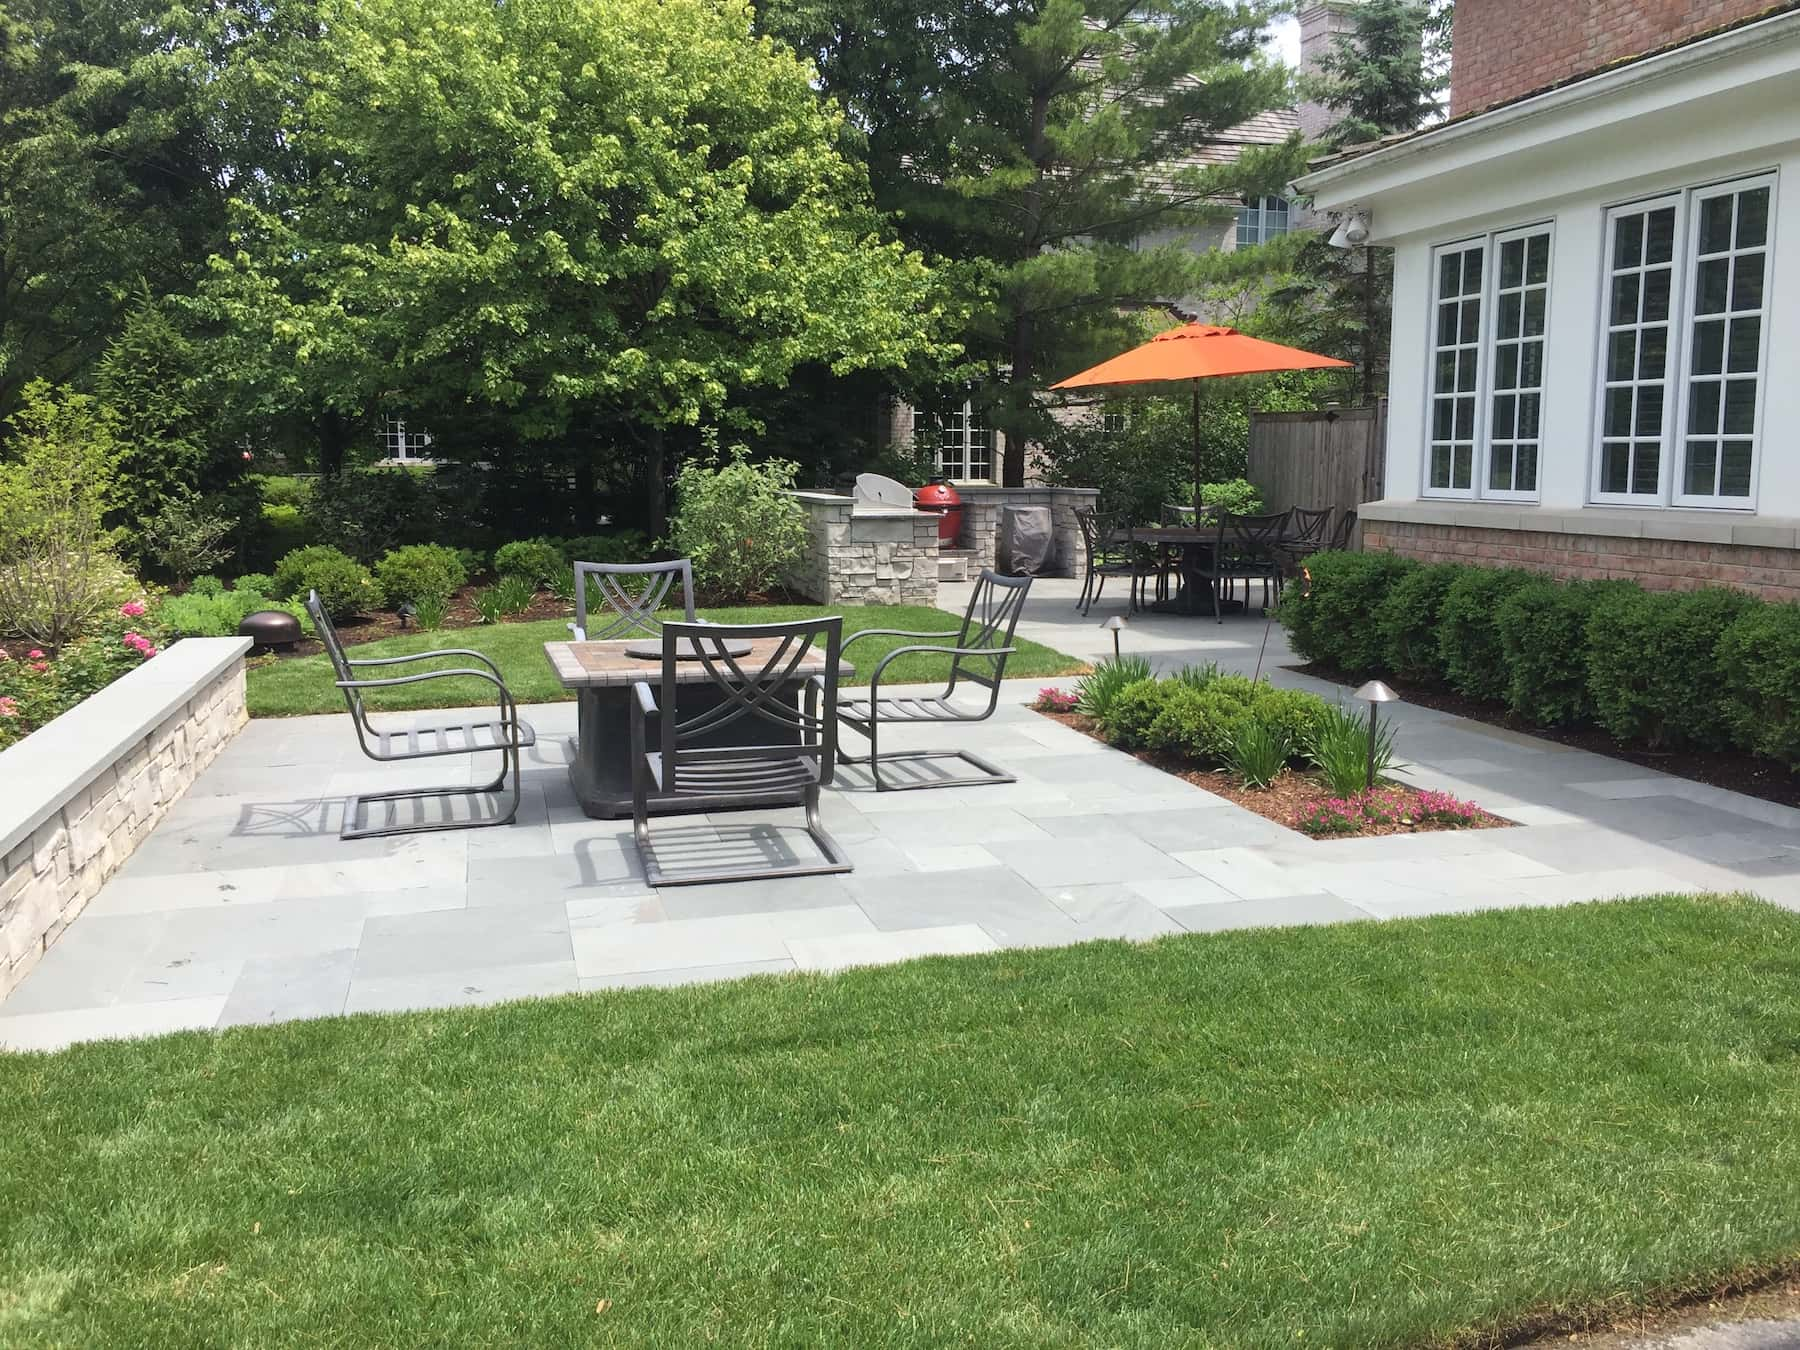 Paver Patio & Fire Pit Lake Forest IL